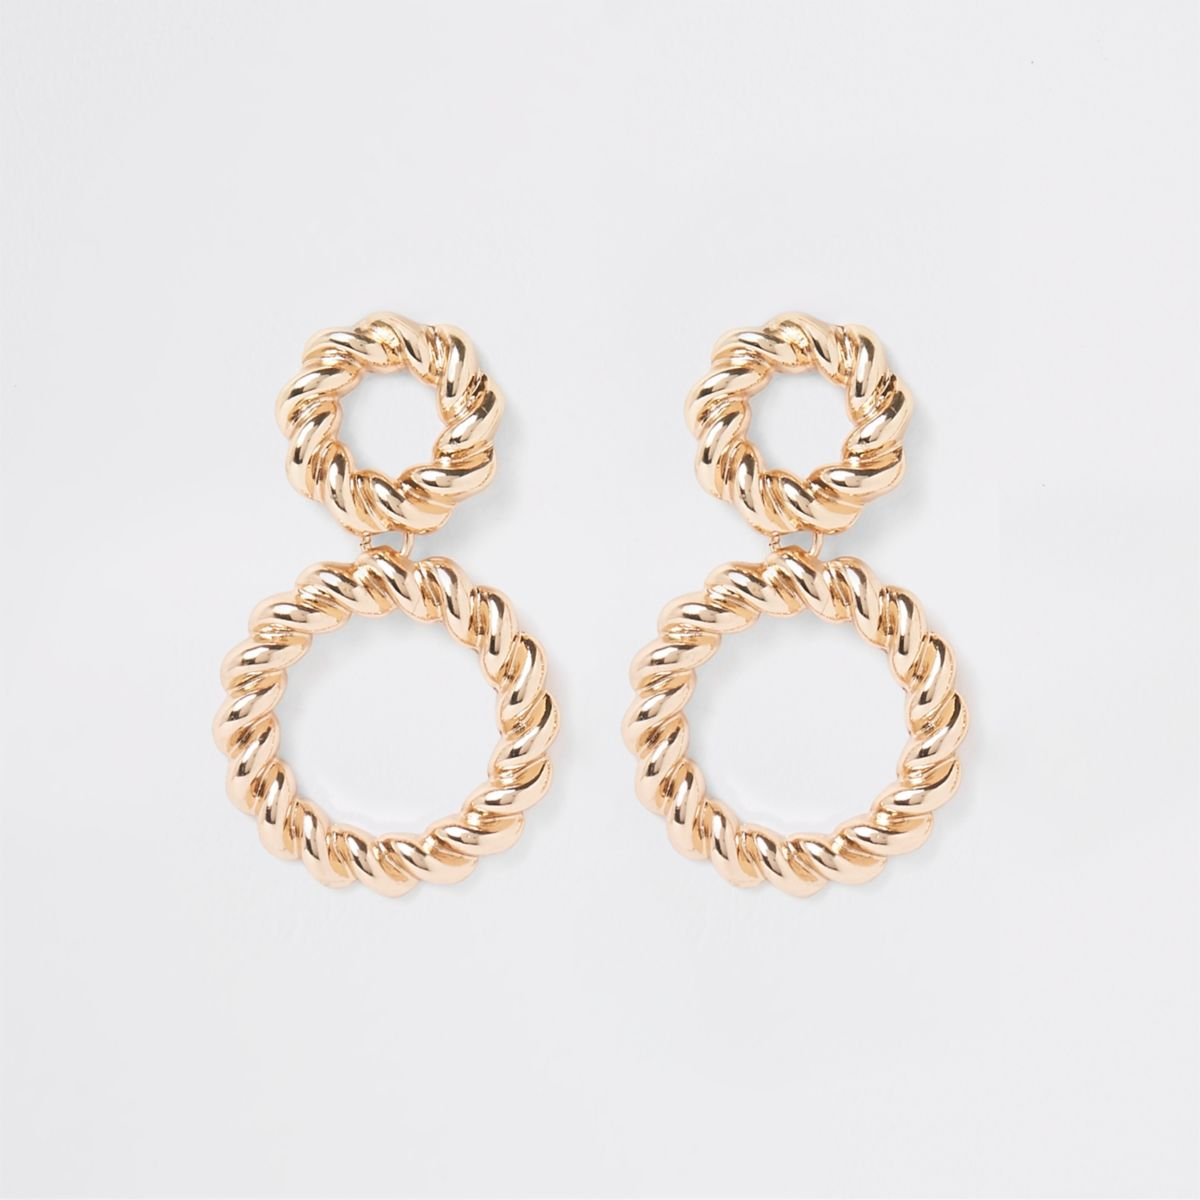 Gold color twisted ring drop earrings